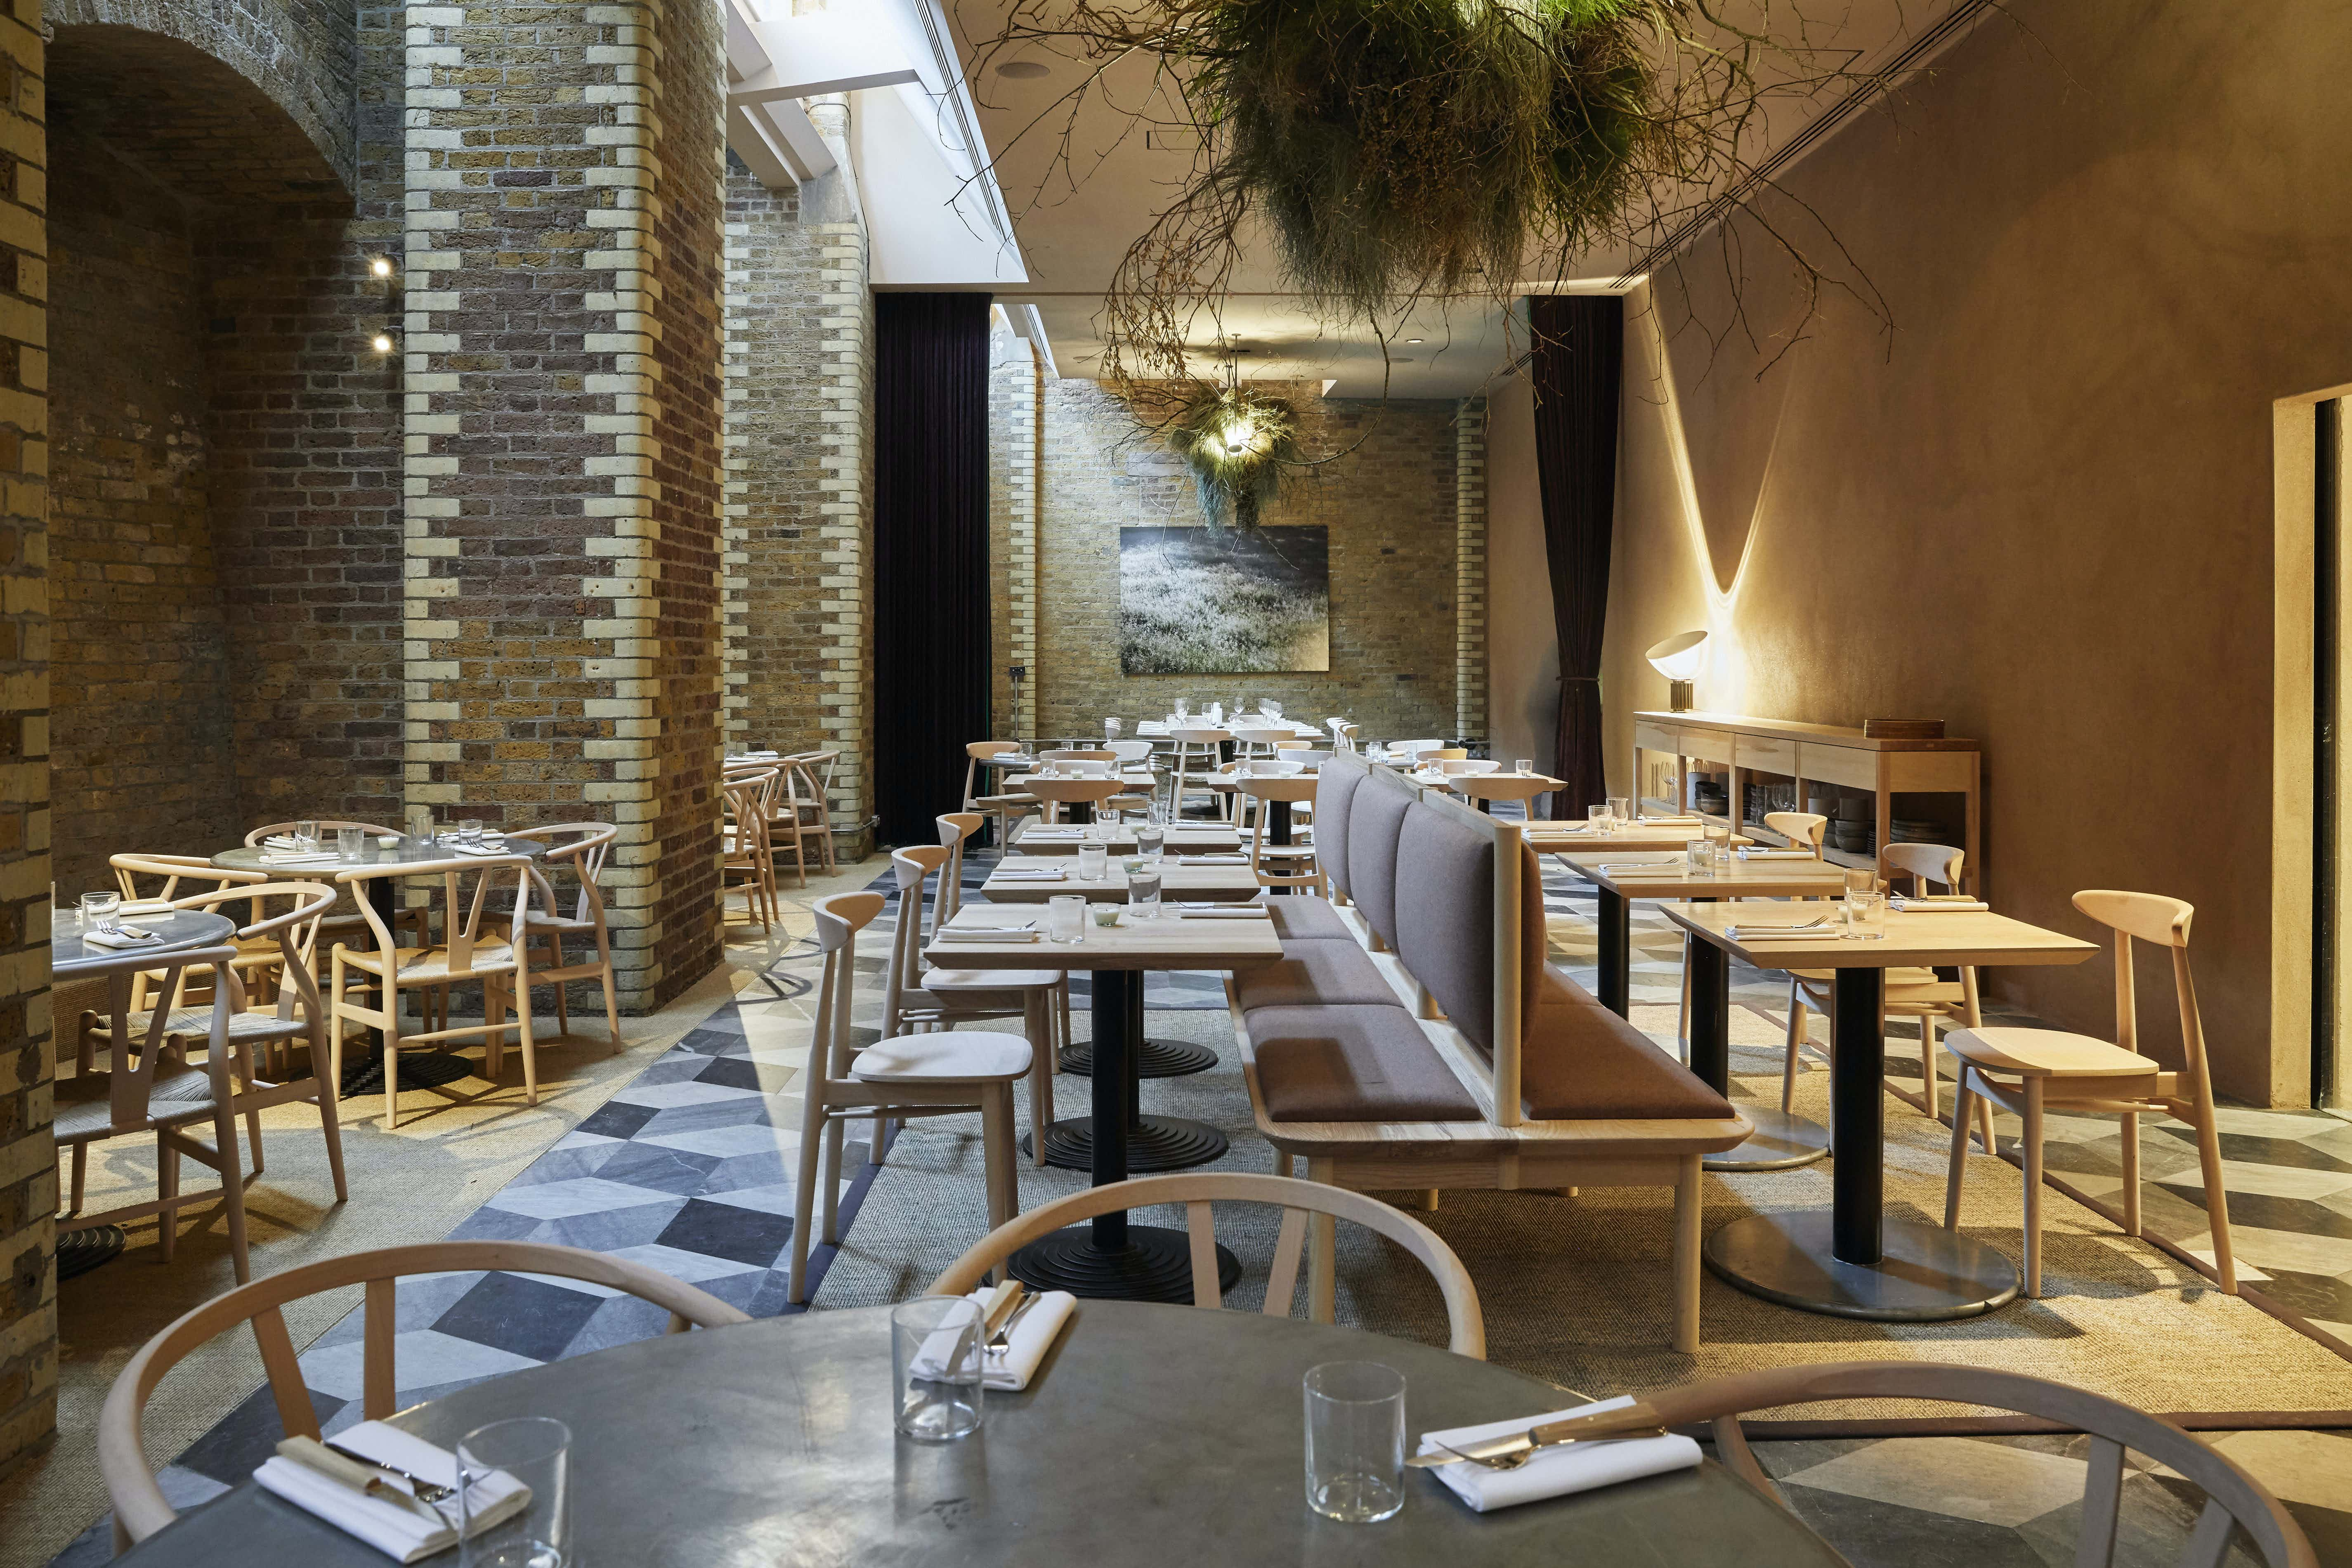 Wilder Restaurant & Bar, Boundary London